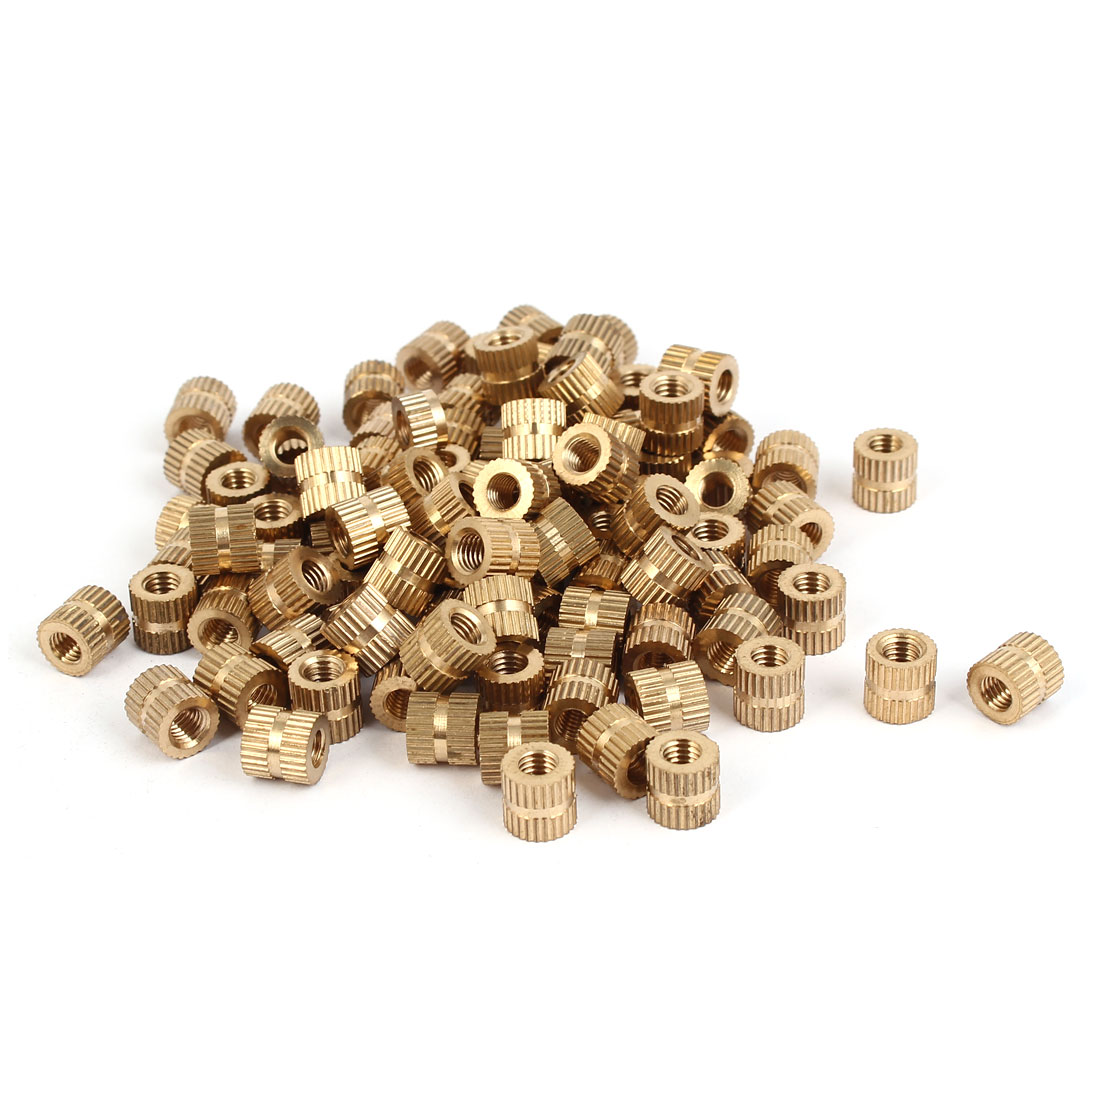 M5 x 8mm Brass Injection Molding Knurled Threaded Insert Embedded Nuts 100PCS